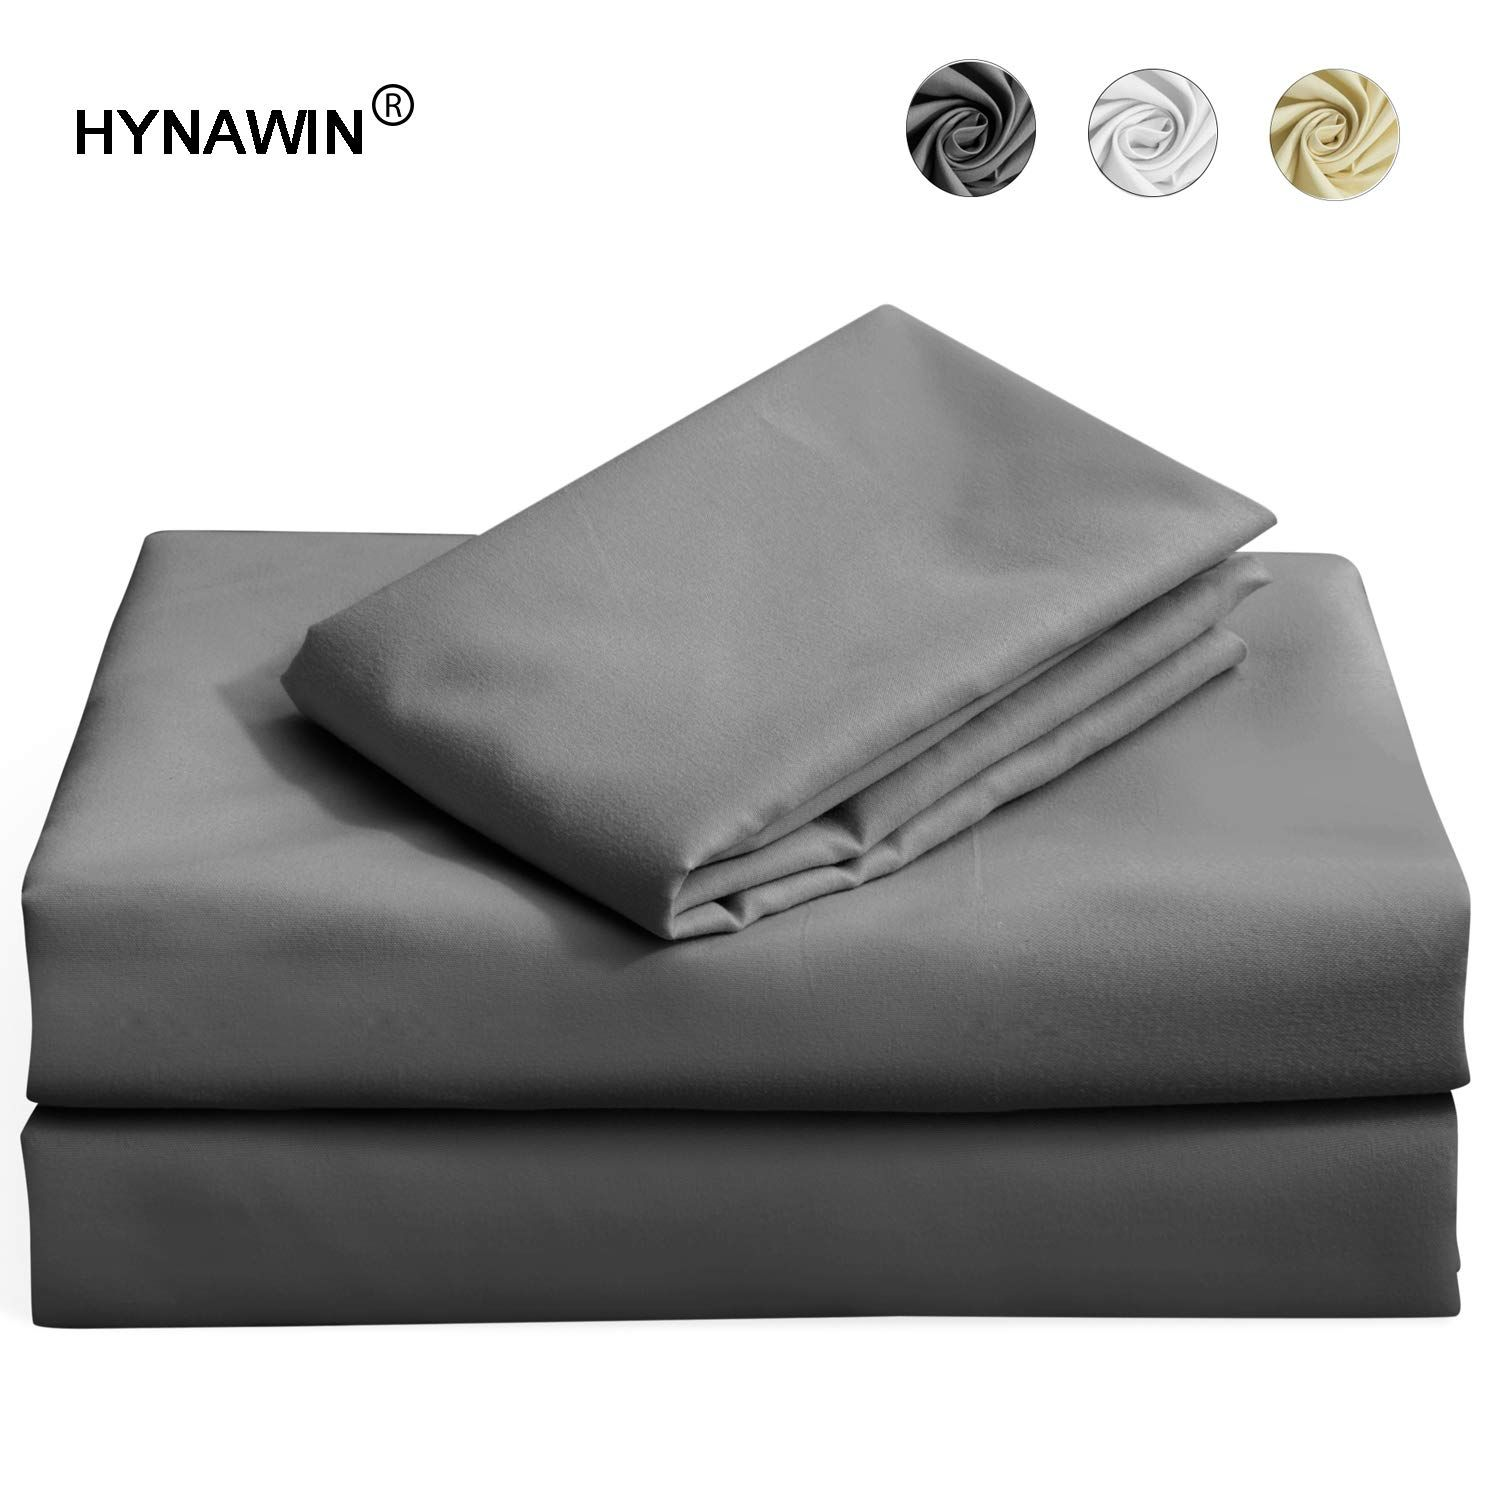 HYNAWIN Twin Size Bed Sheet Set with 14 in Deep Pocket